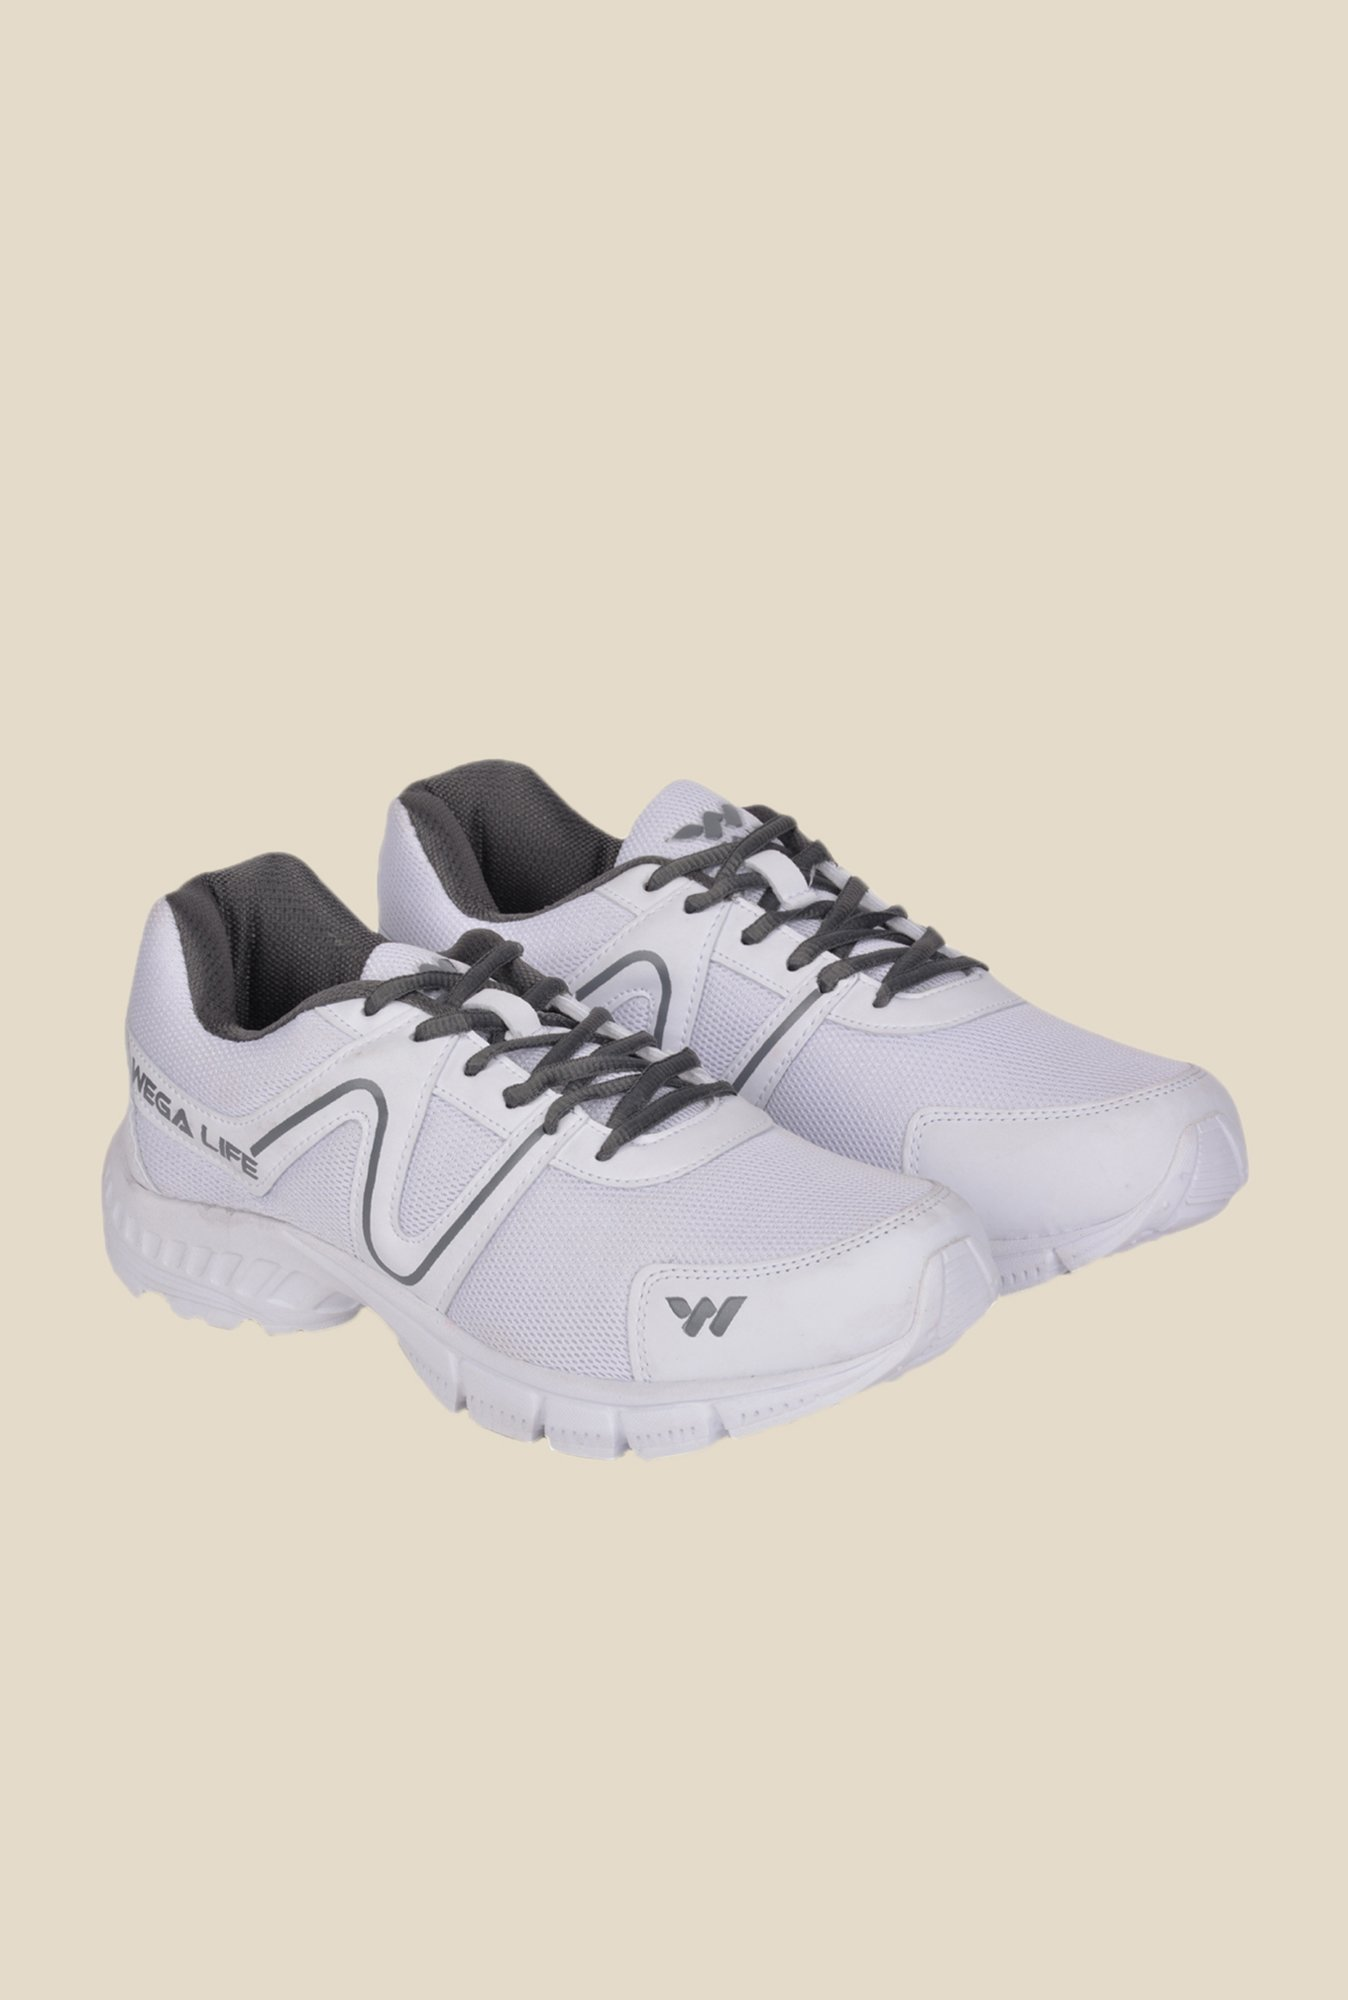 Wega Life Air White & Grey Running Shoes